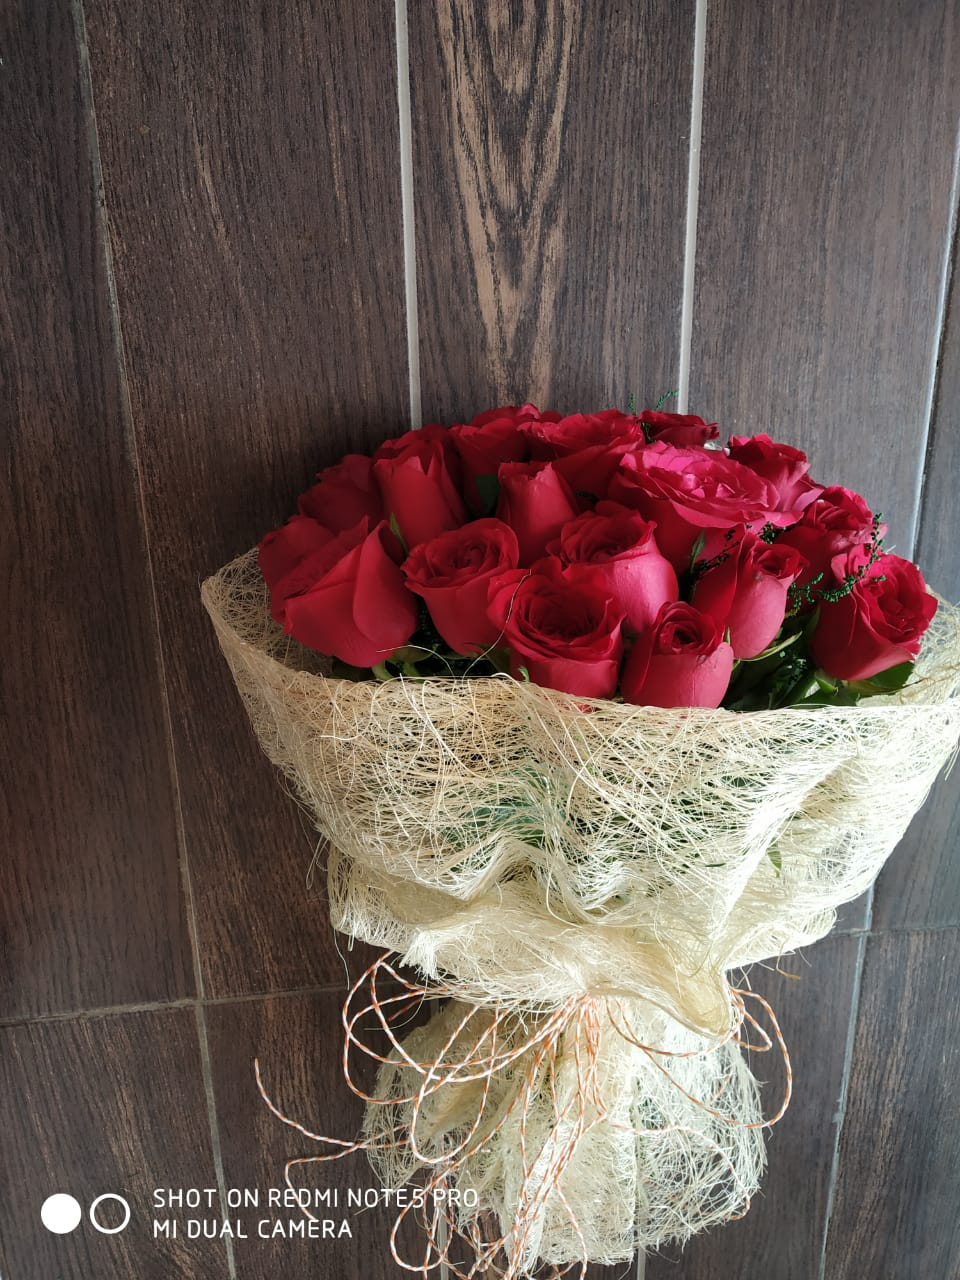 send flower Hazrat Nizamuddin DelhiRed Roses in Jute